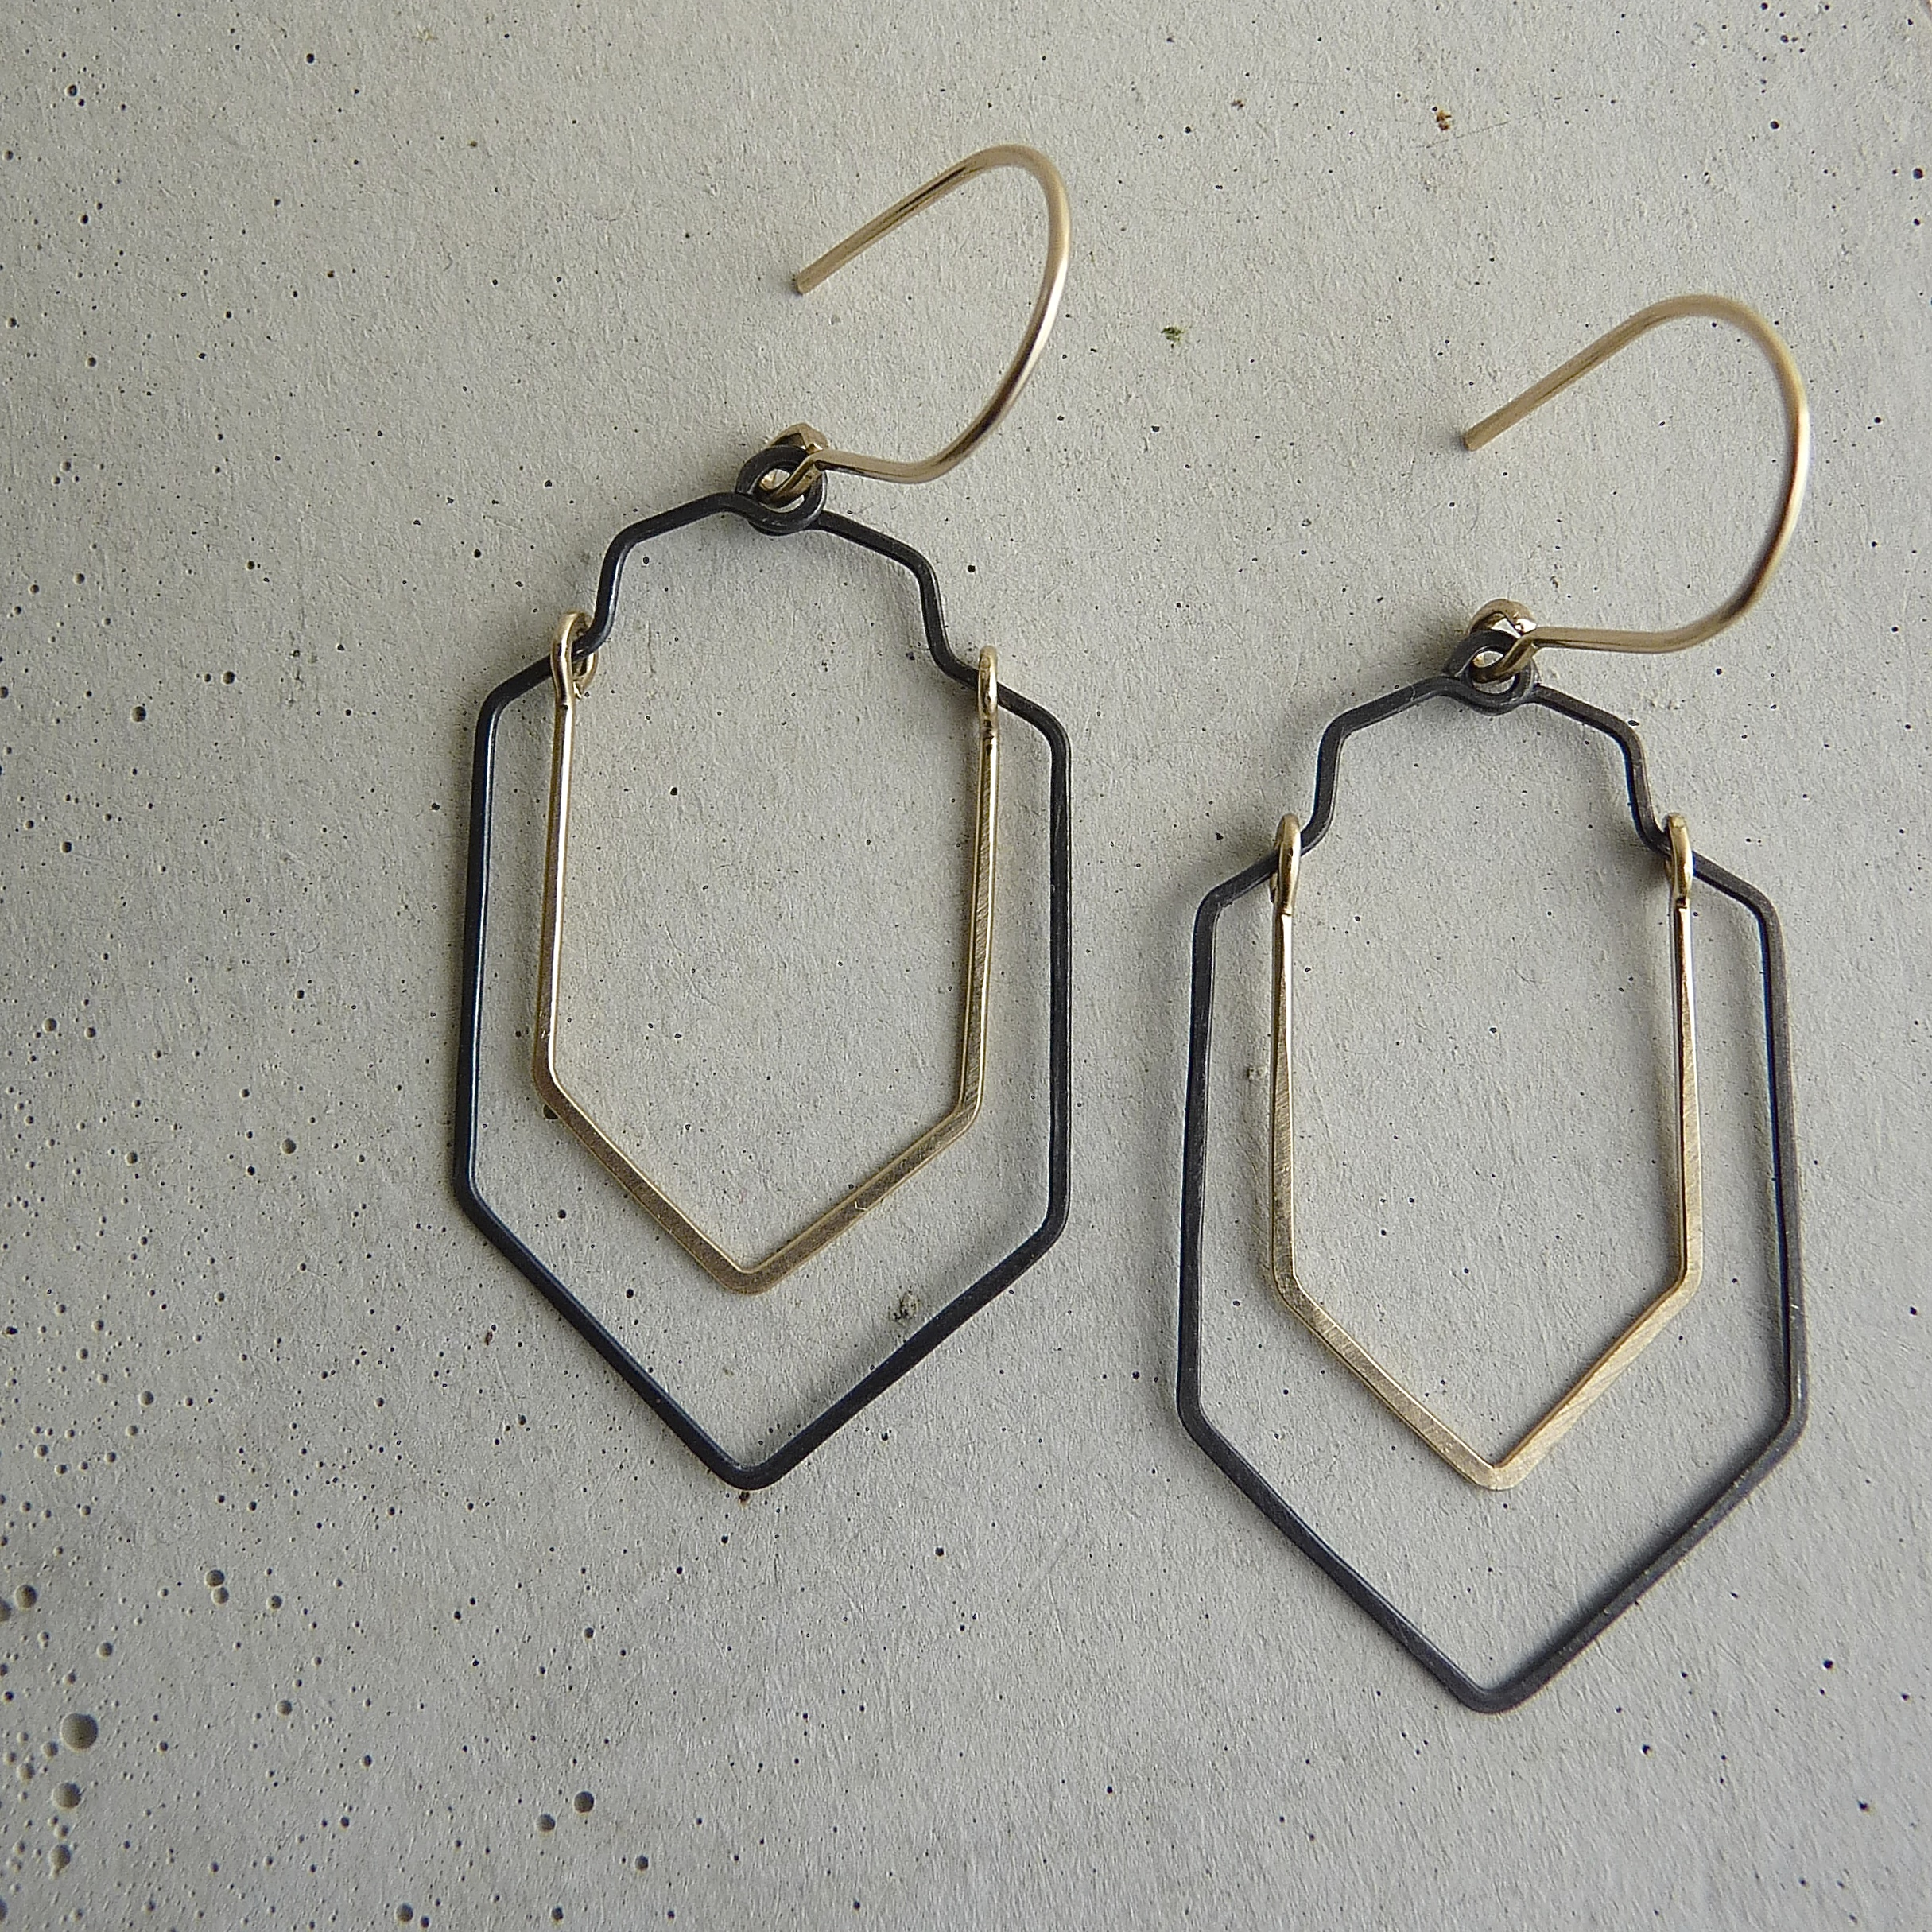 valley earrings, gold and black, modern contemporary, hammered earrings, geometric jewelry, new refined basics